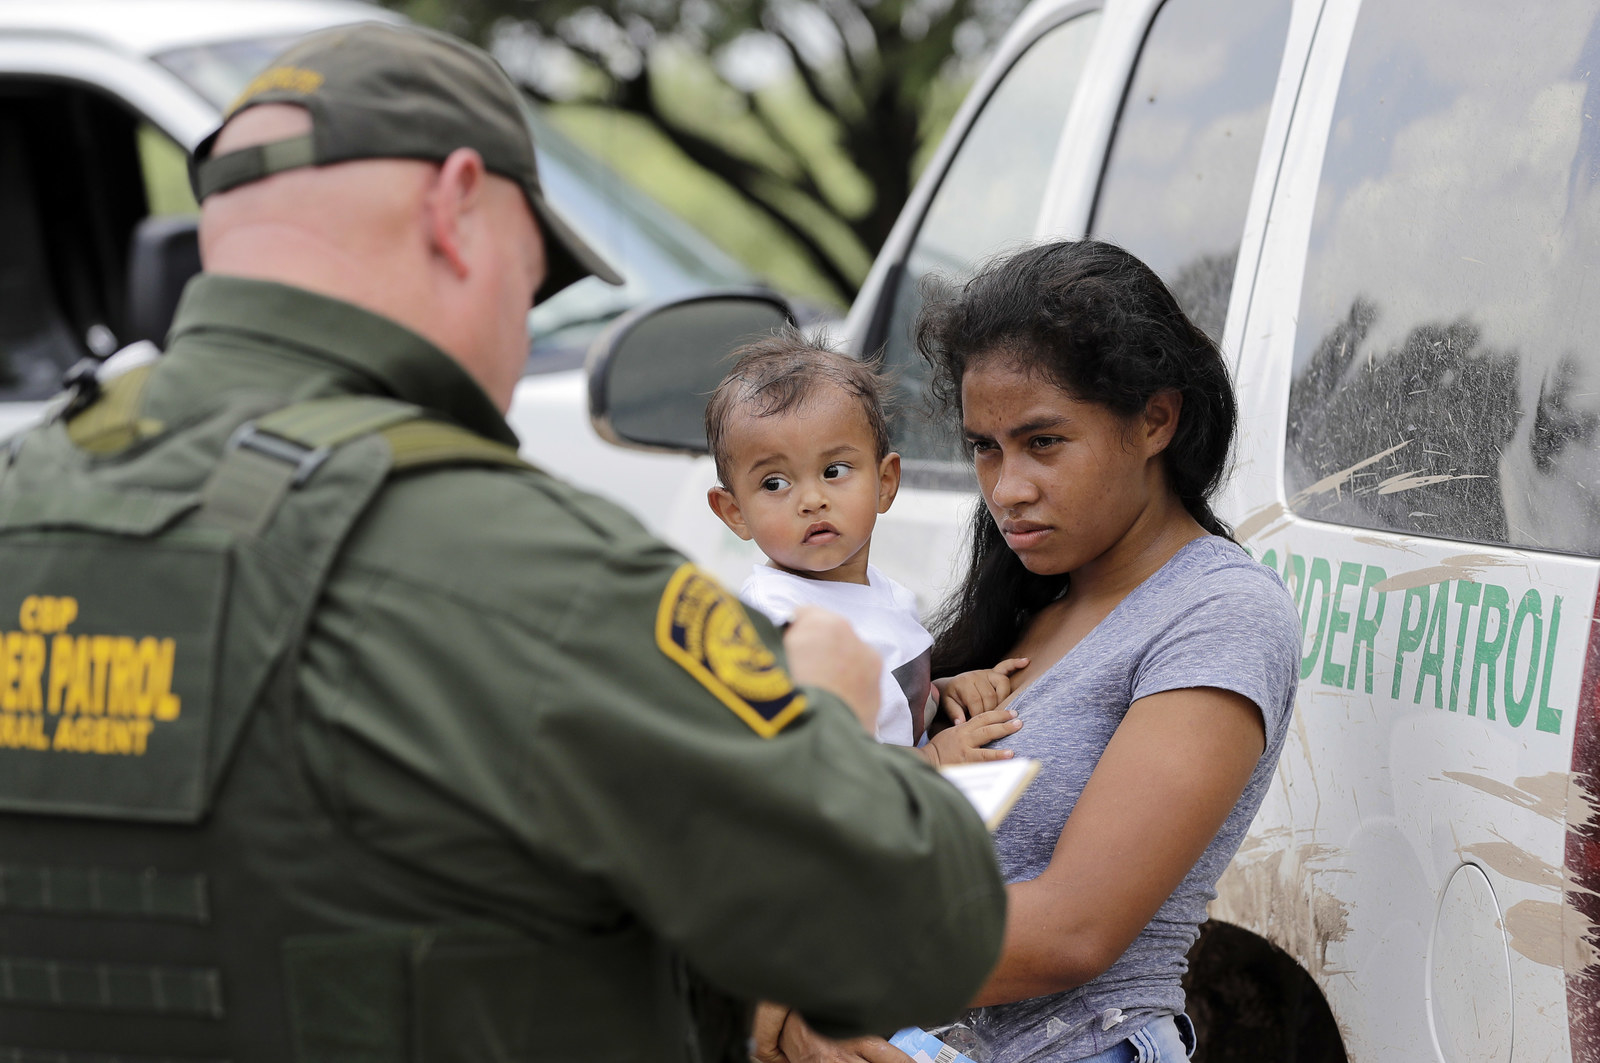 A mother migrating from Honduras holds her 1-year-old child as she surrenders to U.S. Border Patrol agent near McAllen, Texas.